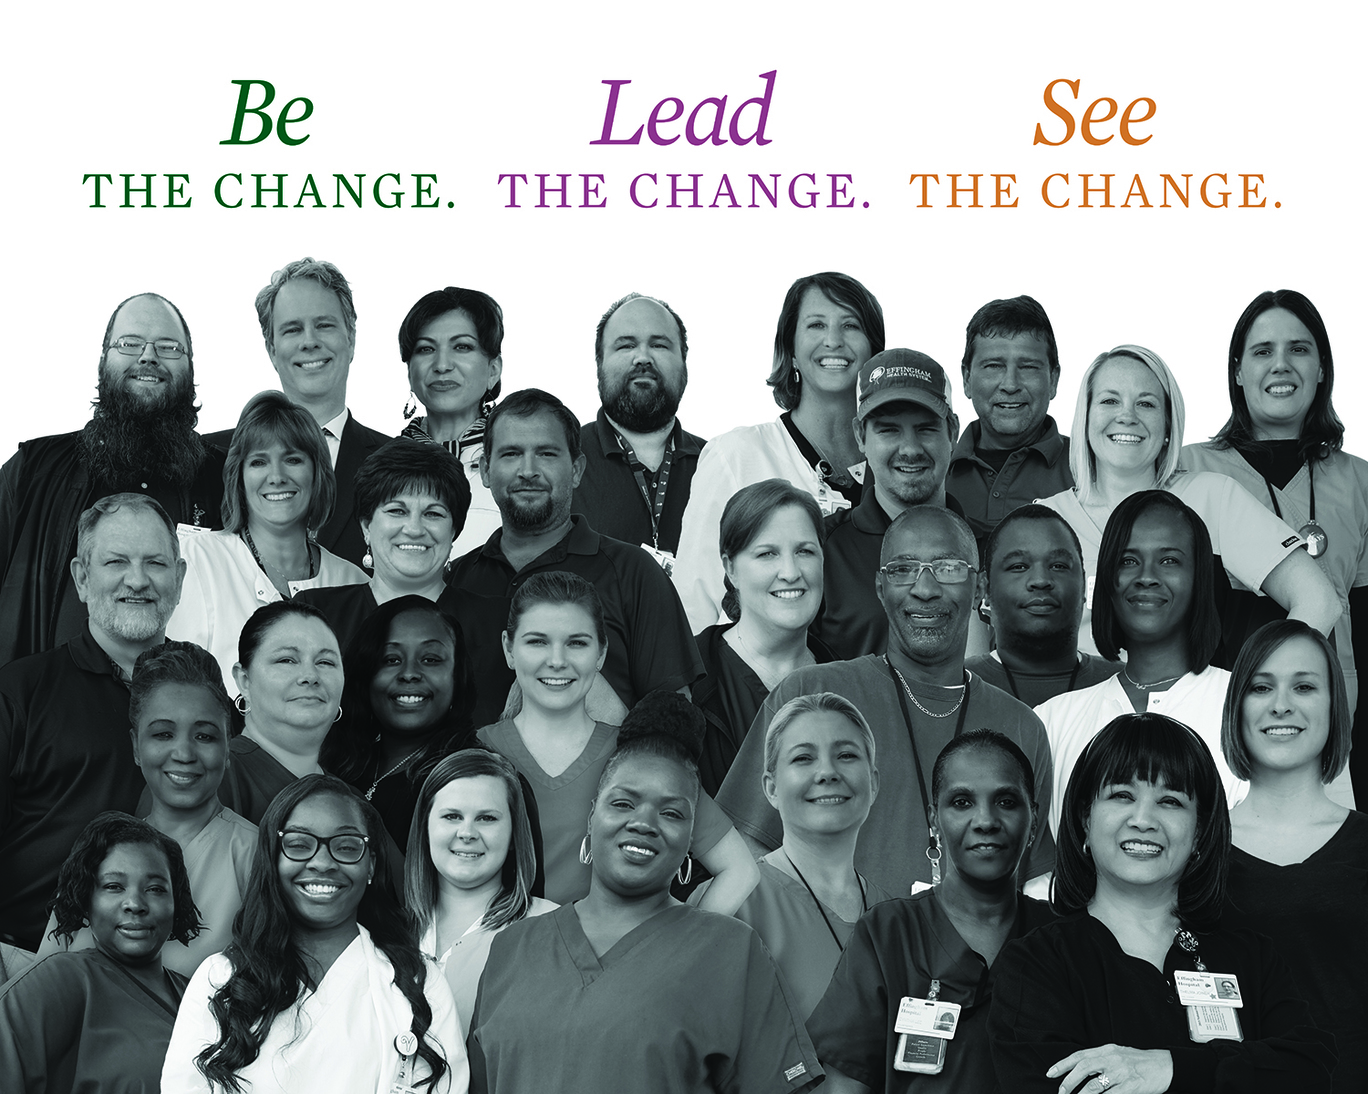 Group of EHS Employees with copy: Be the Change. Lead the Change. See the Change.